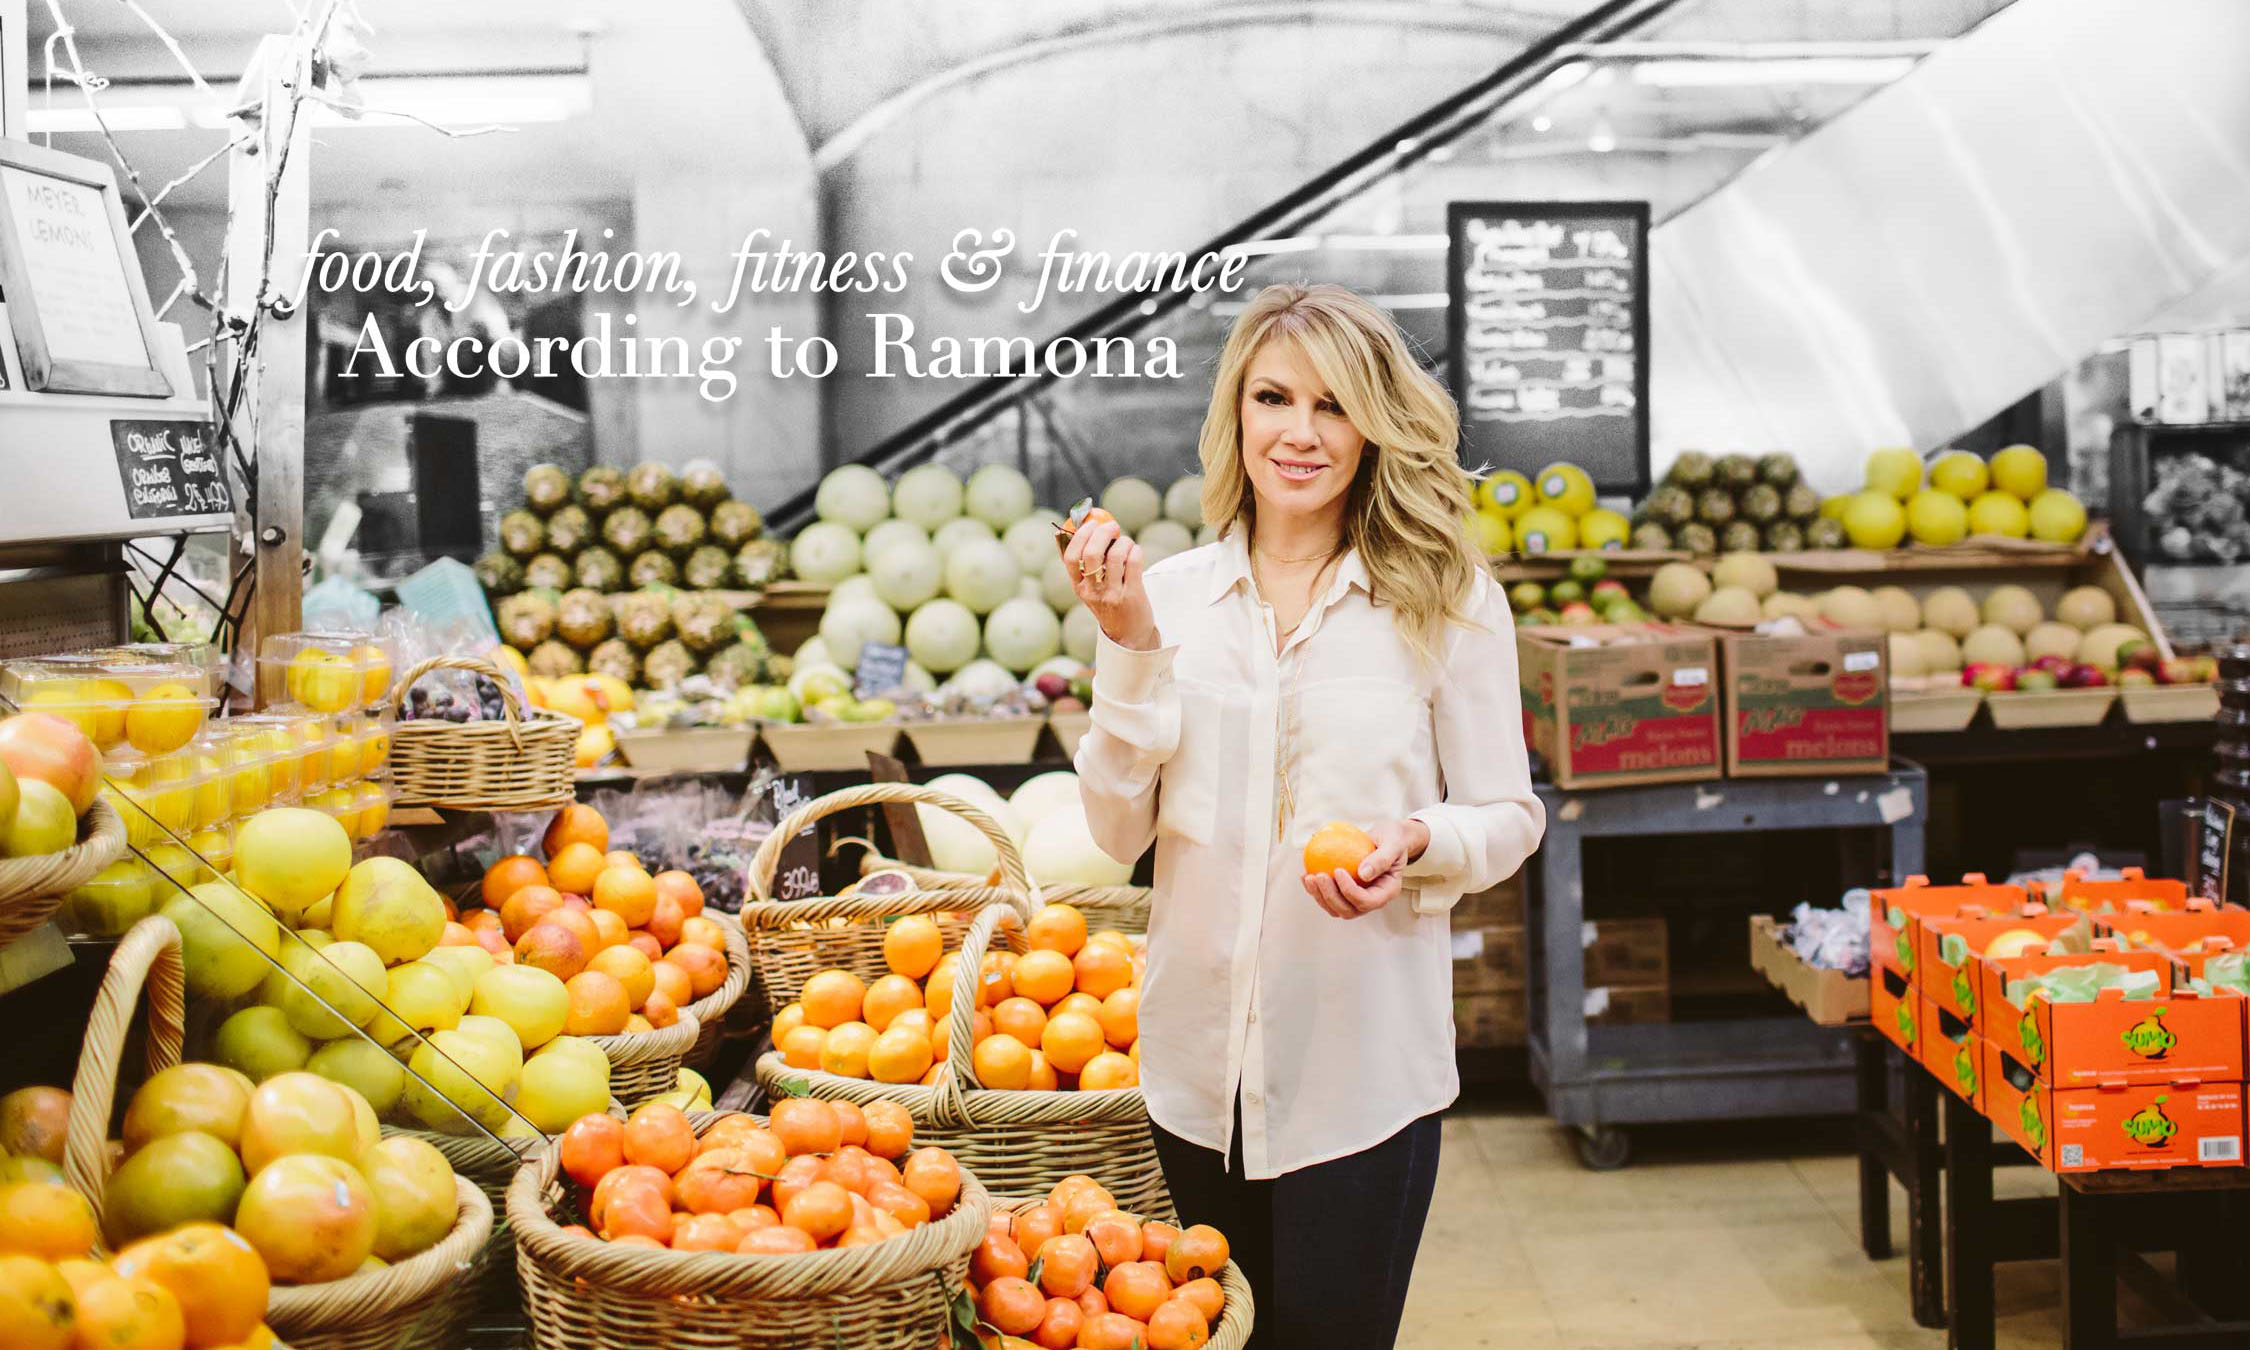 food, fashion, fitness & finance: According to Ramona